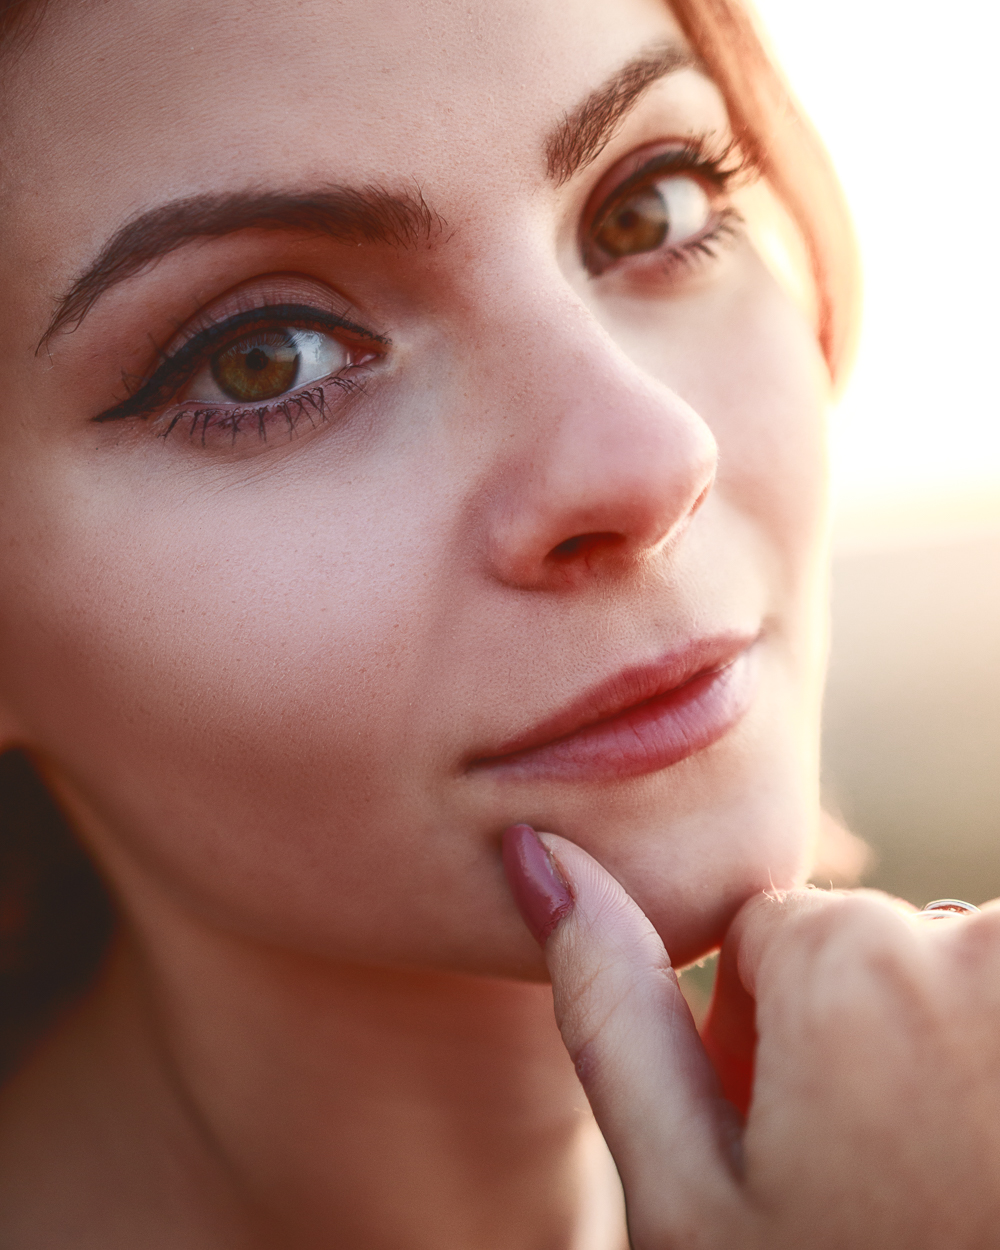 Classic close up portrait during golden hour. Photo by Dzvonko Petrovski. All rights reserved.